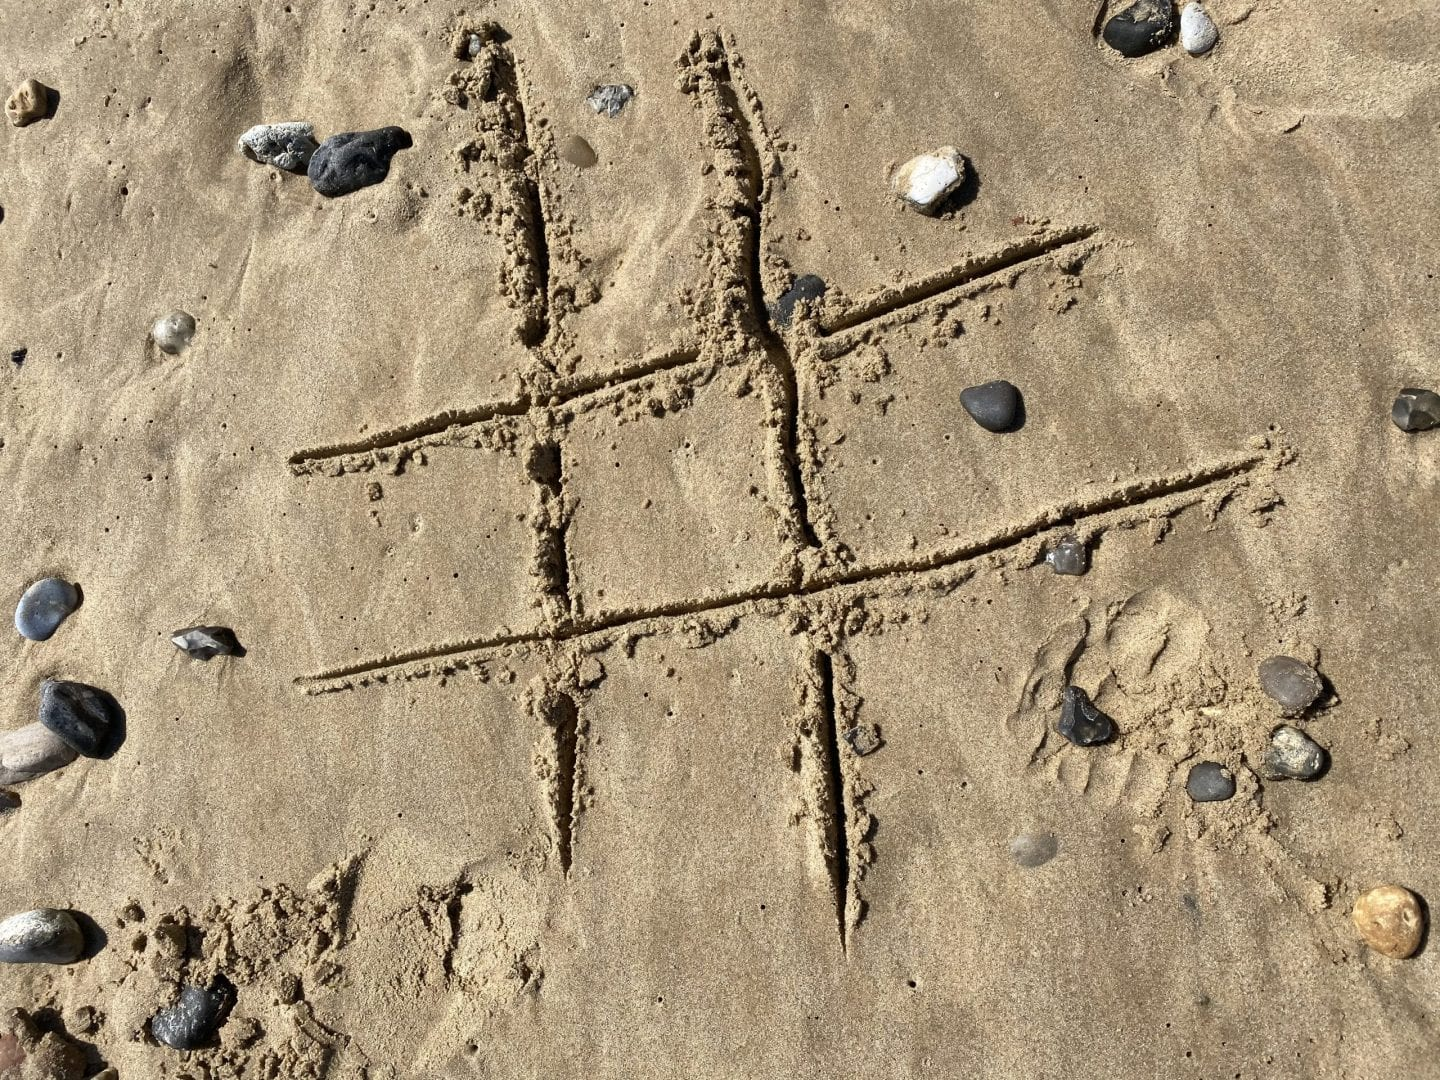 tic tac toe drawn in the sand